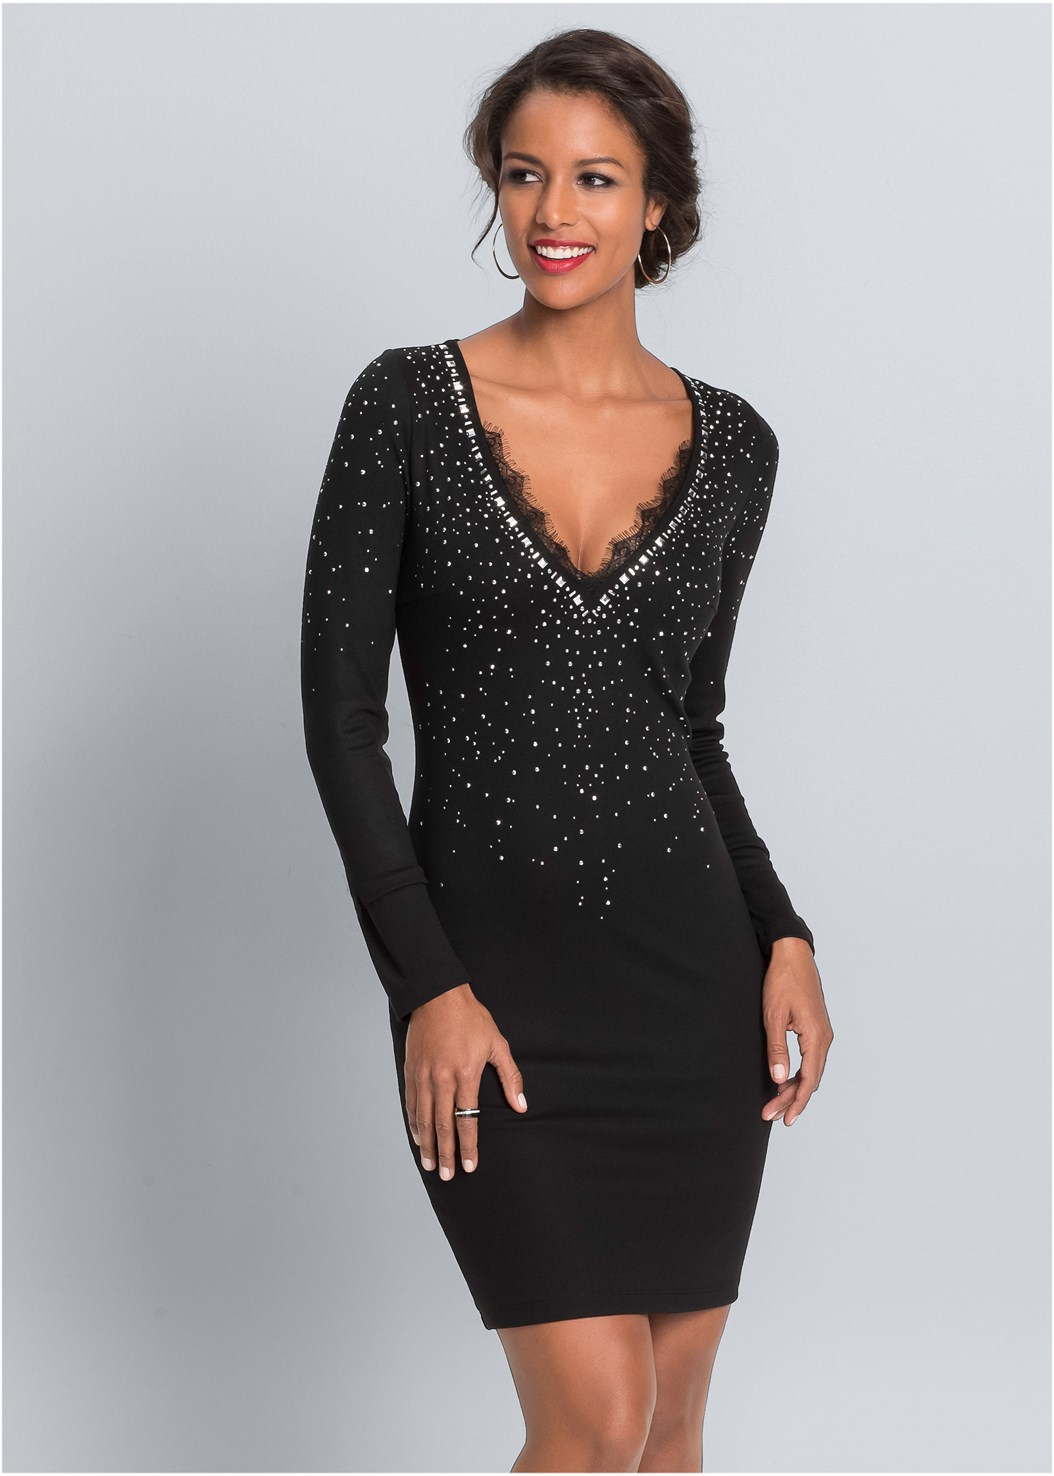 Embellished Party Dress,Confidence Seamless Dress